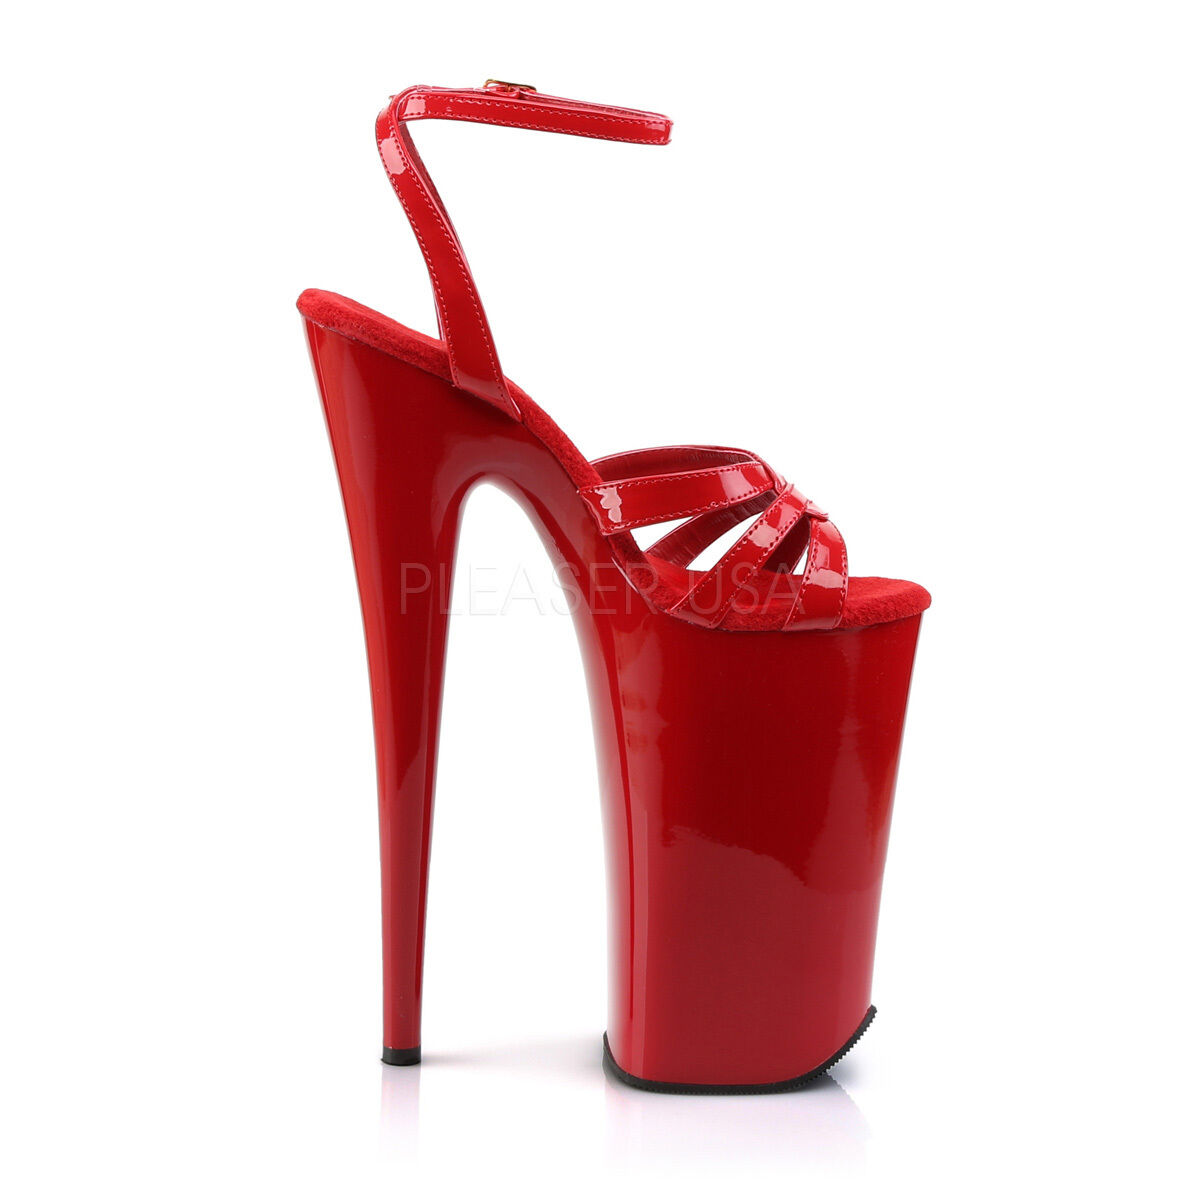 PLEASER BEY012 R R R M Sexy shoes Exotic Strappy Red Platform 10  Extreme High Heels 73629d